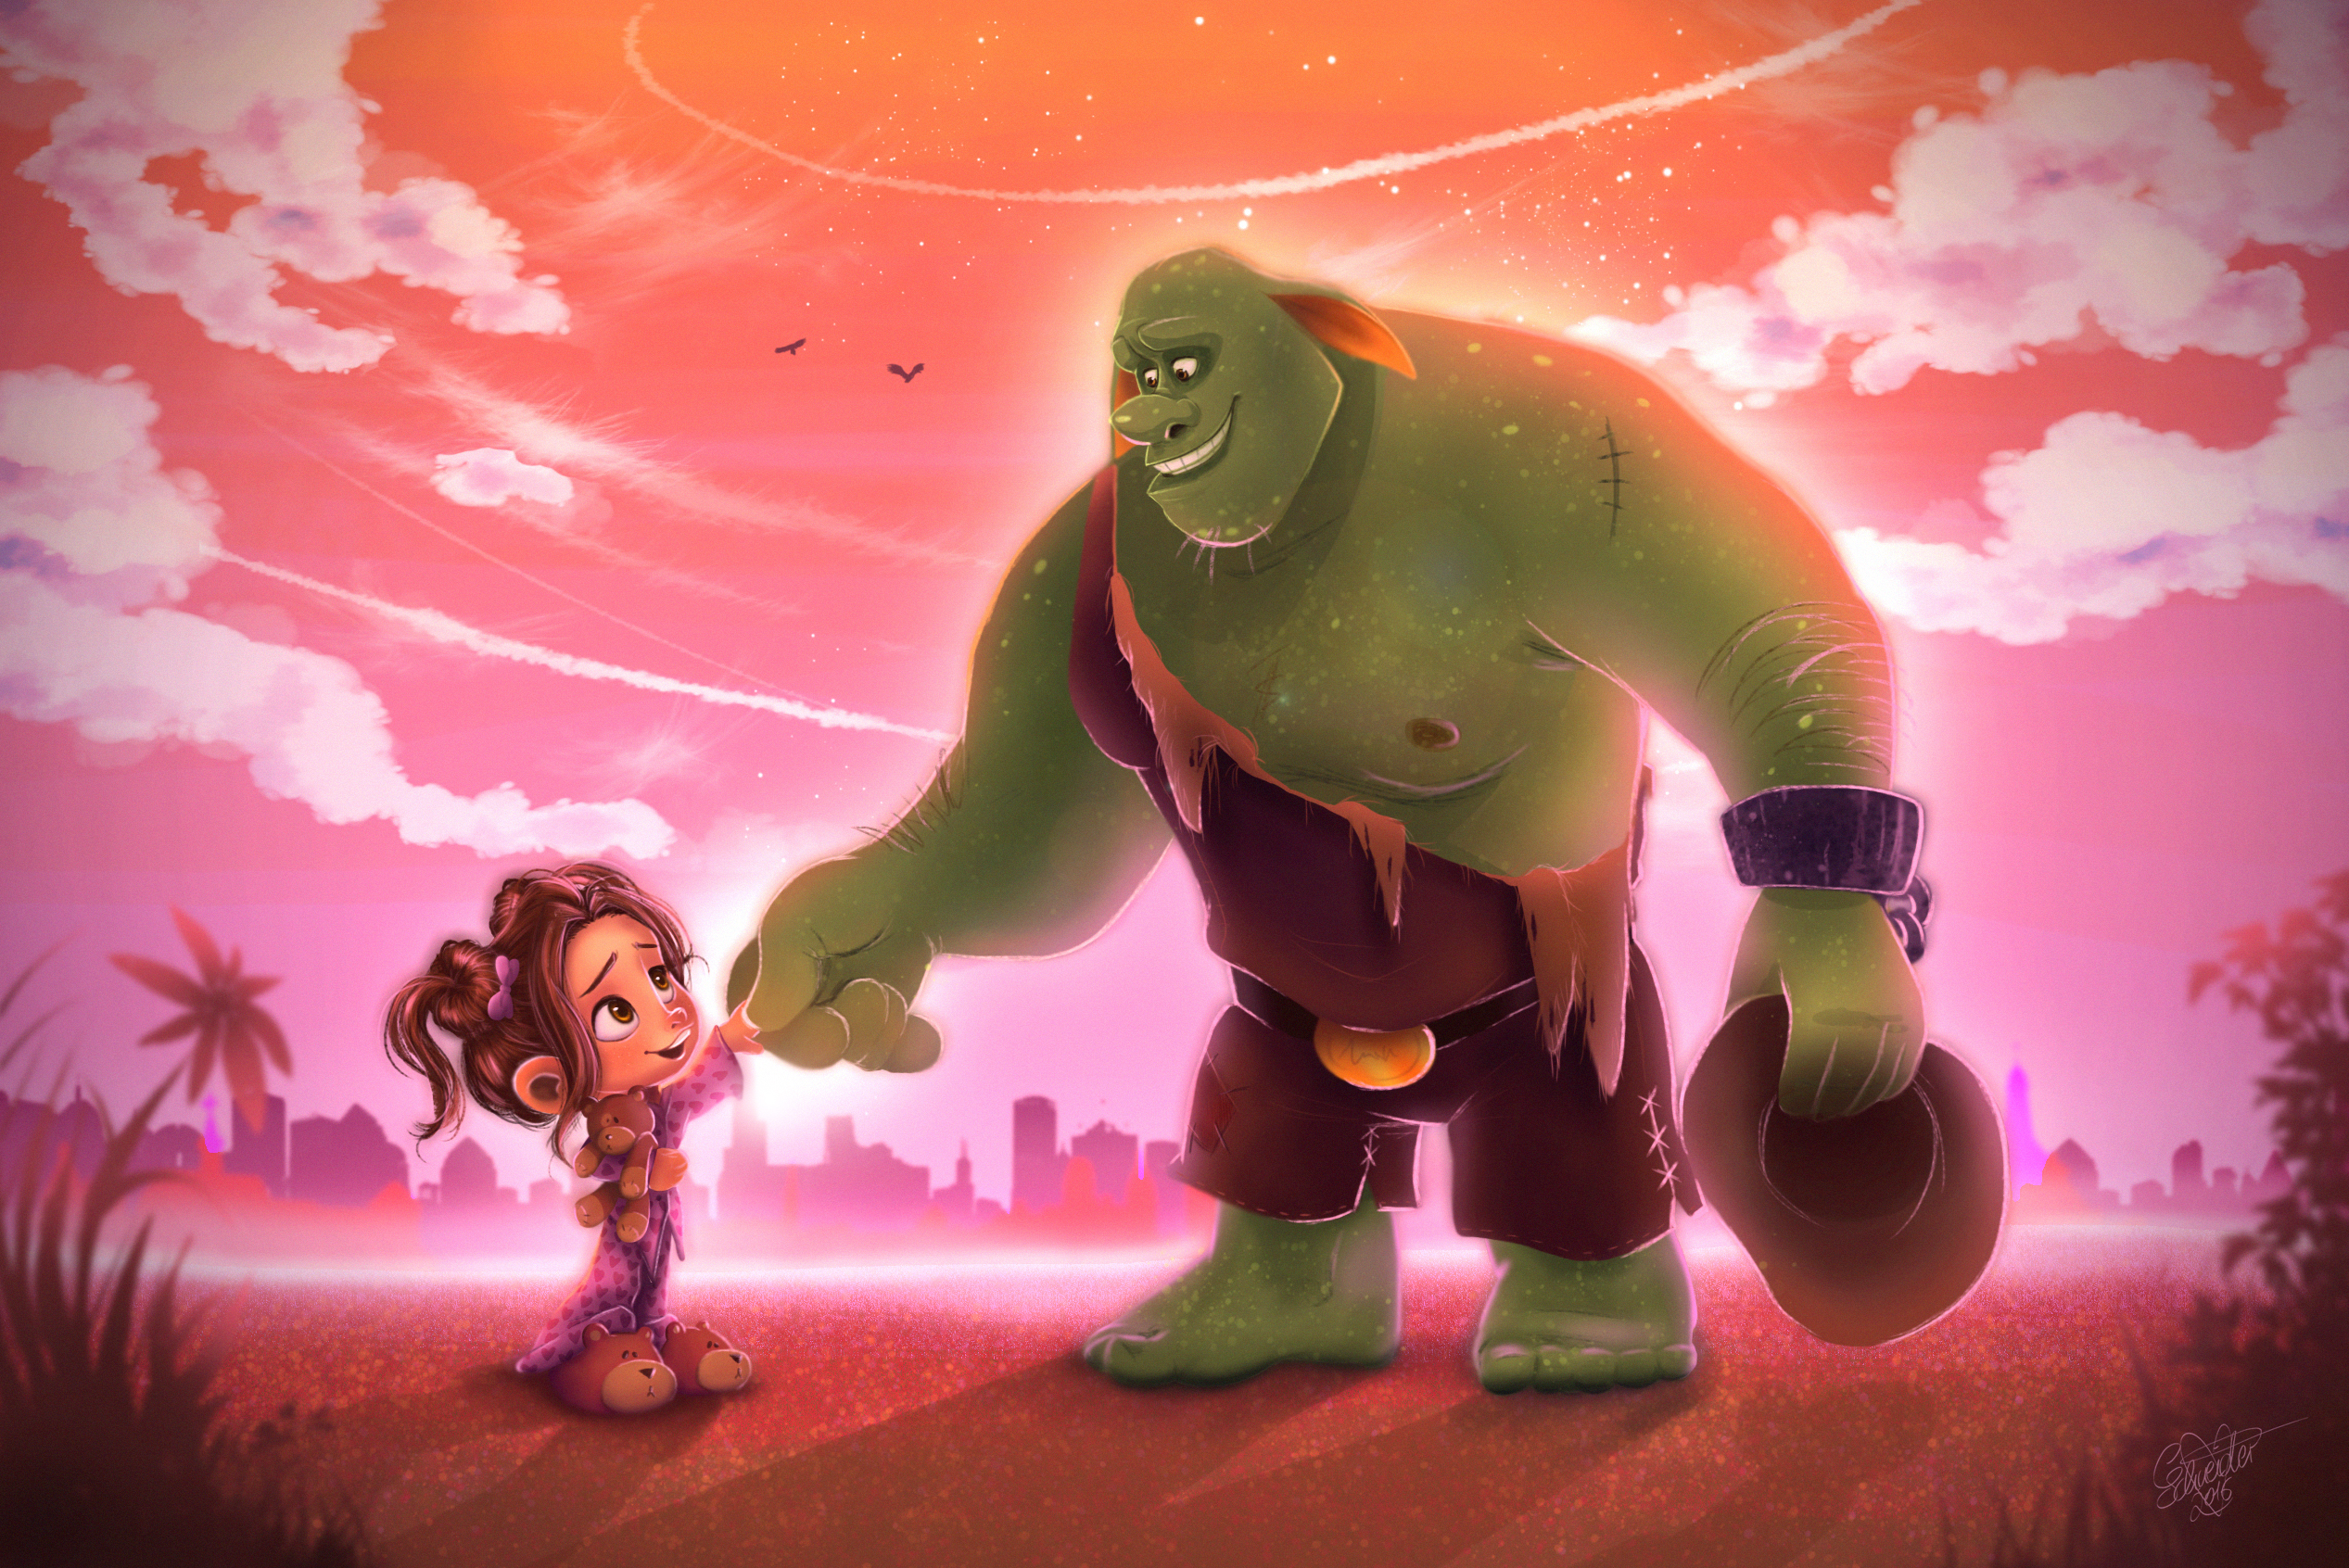 LITTLE MARY & THE OGRE